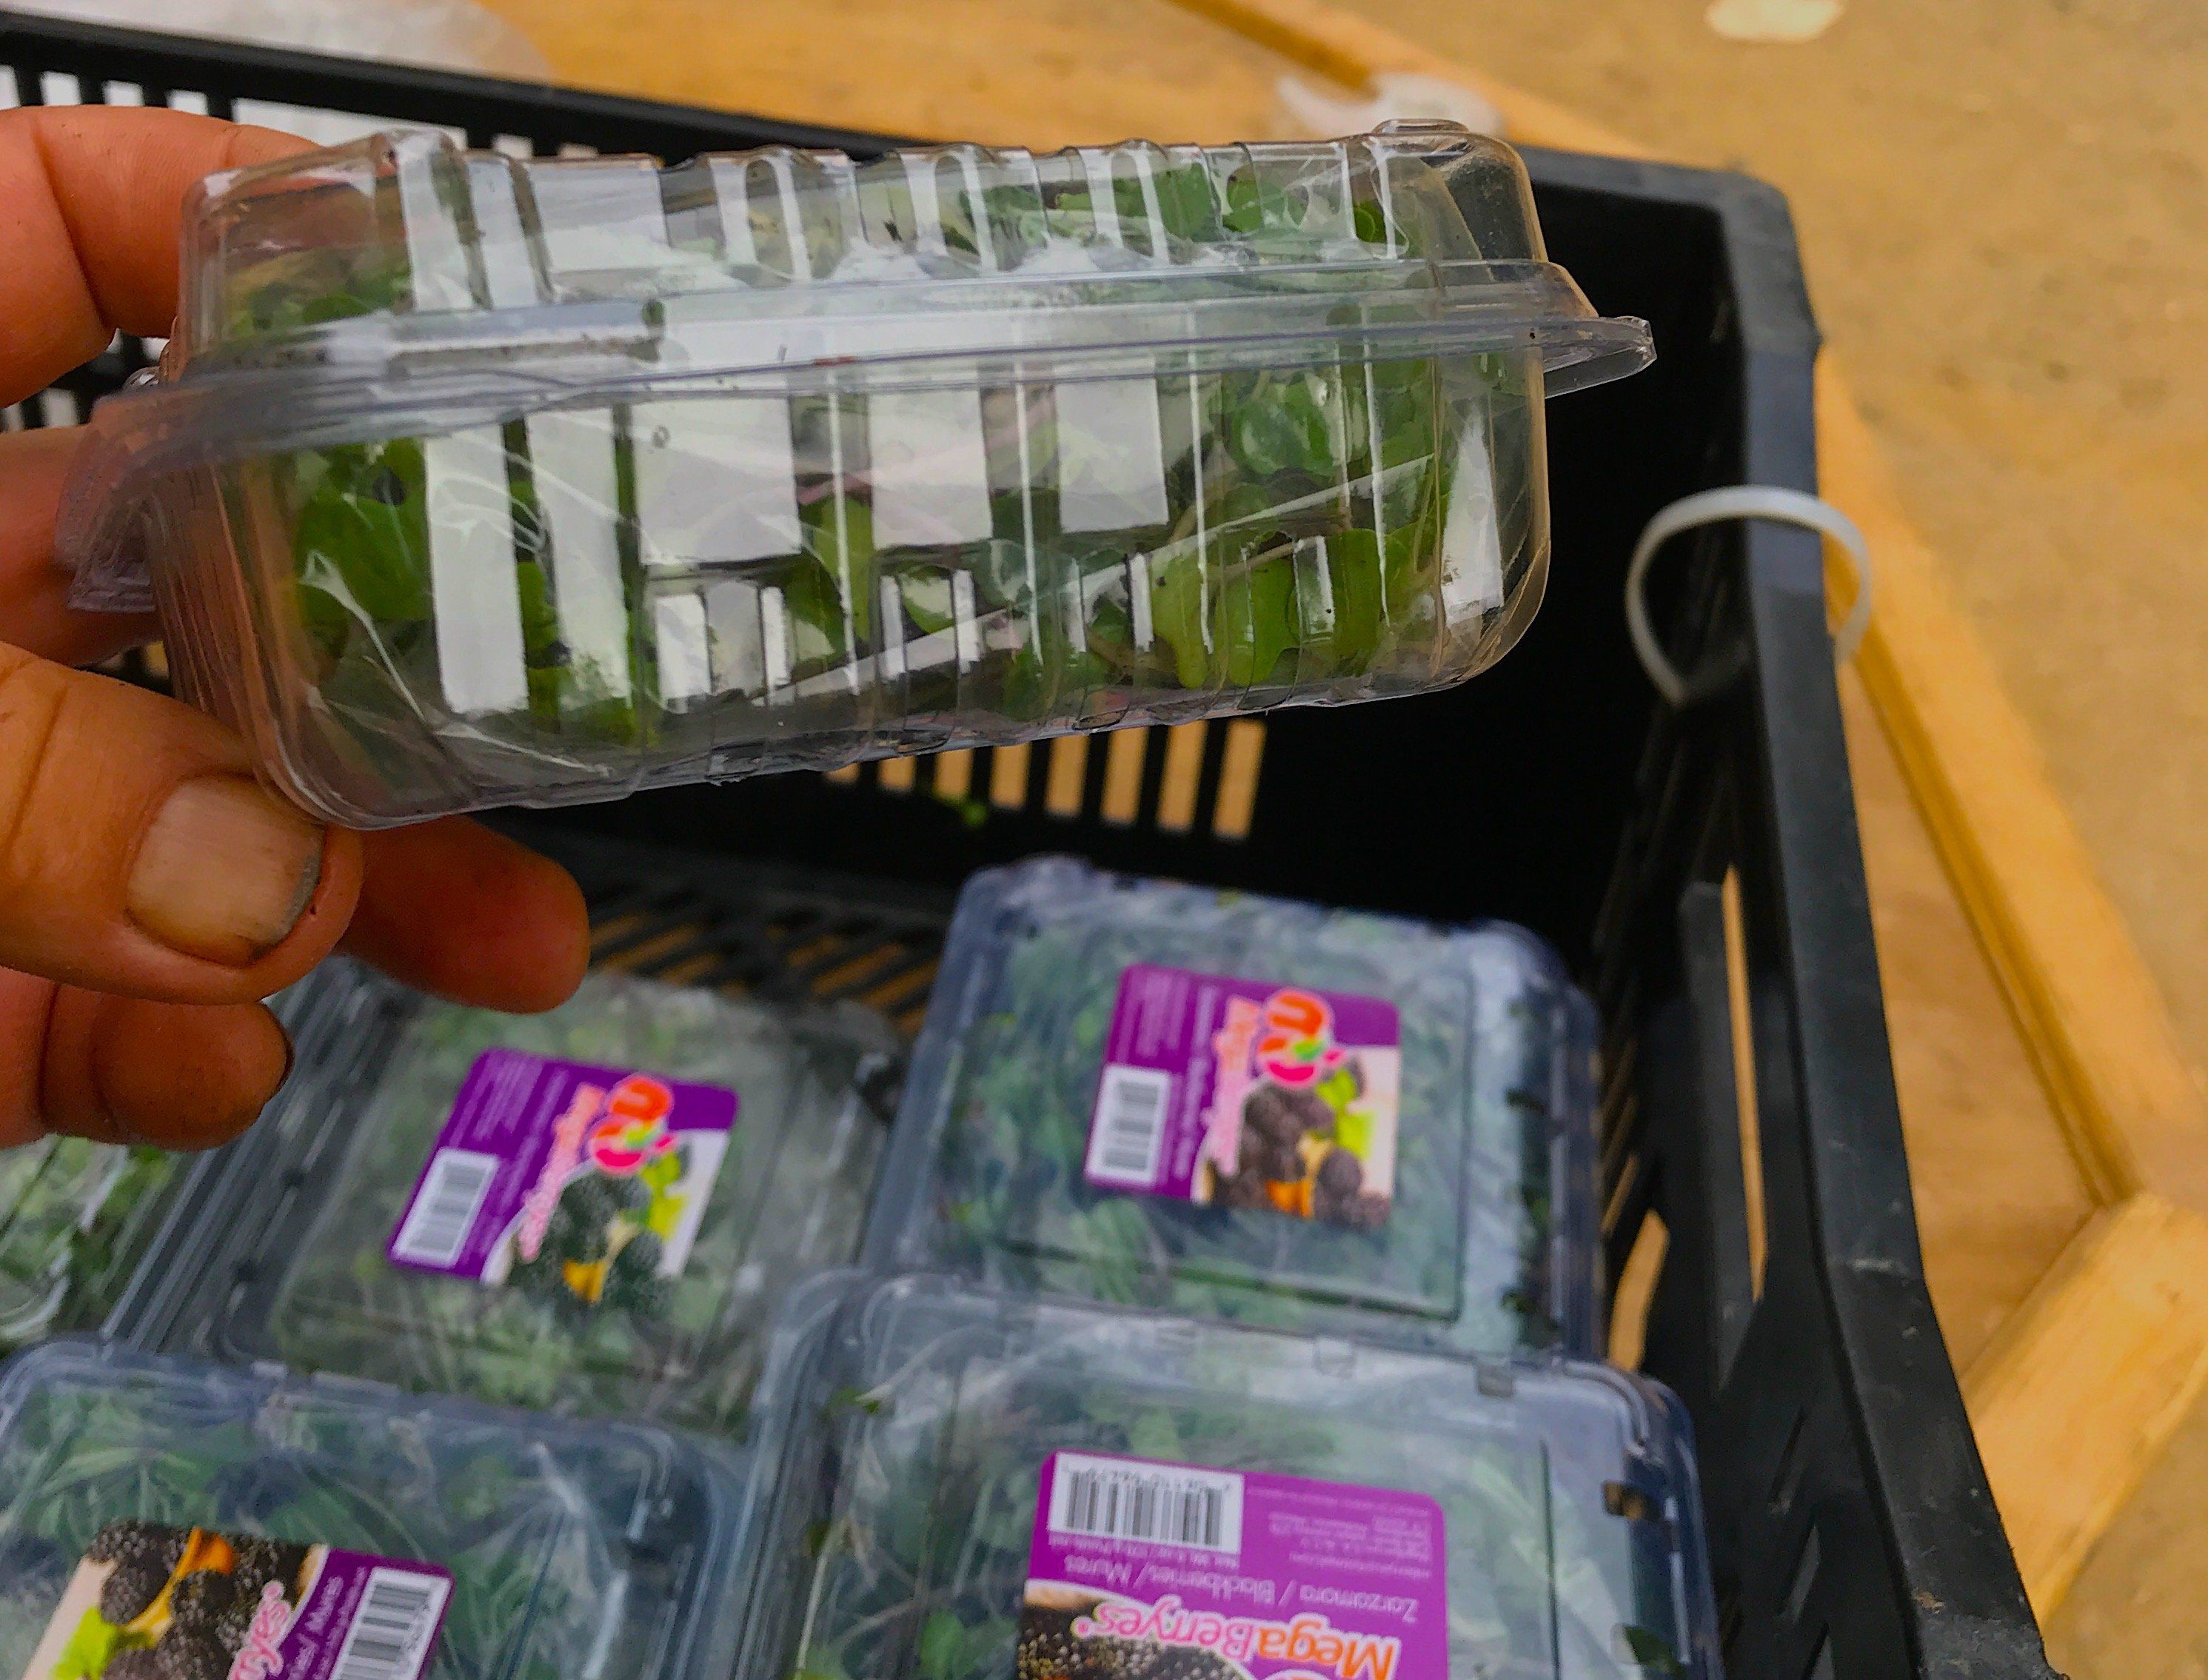 Previous Happening: Week 10: Farewell to Leafy Greens, Hello Micro-Greens